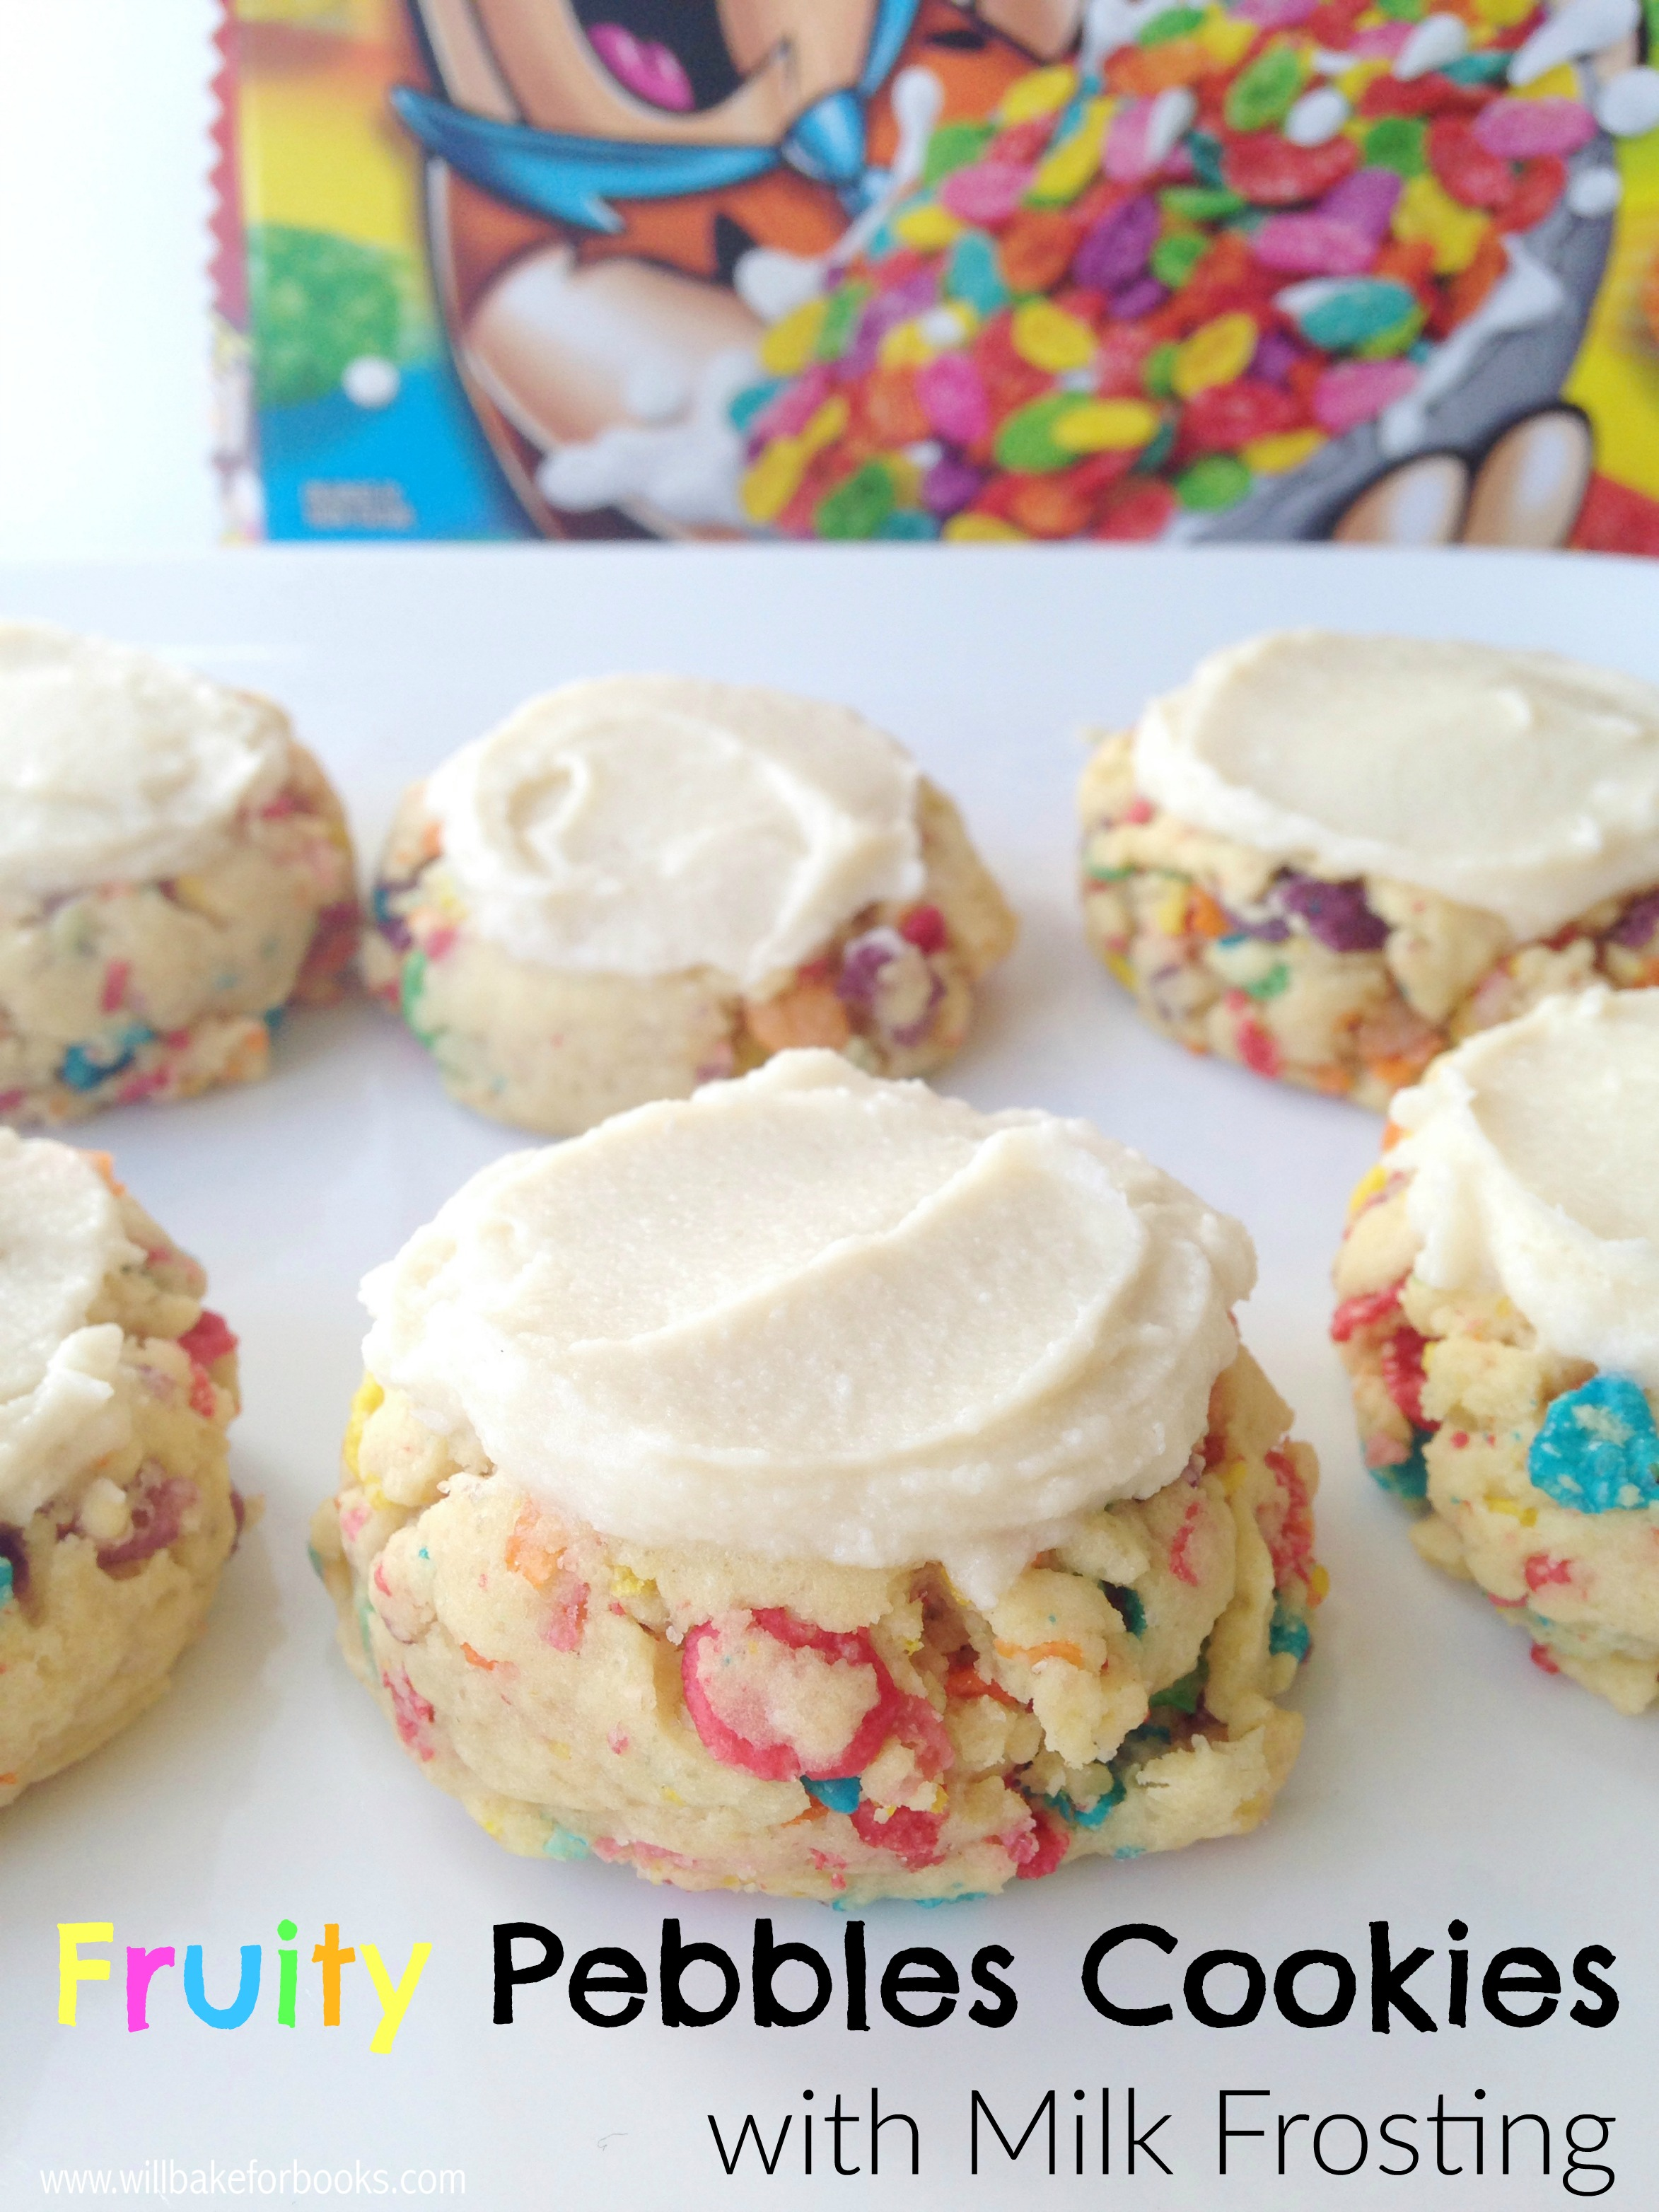 Fruity Pebbles Cookies with Milk Frosting on www.willbakeforbooks.com